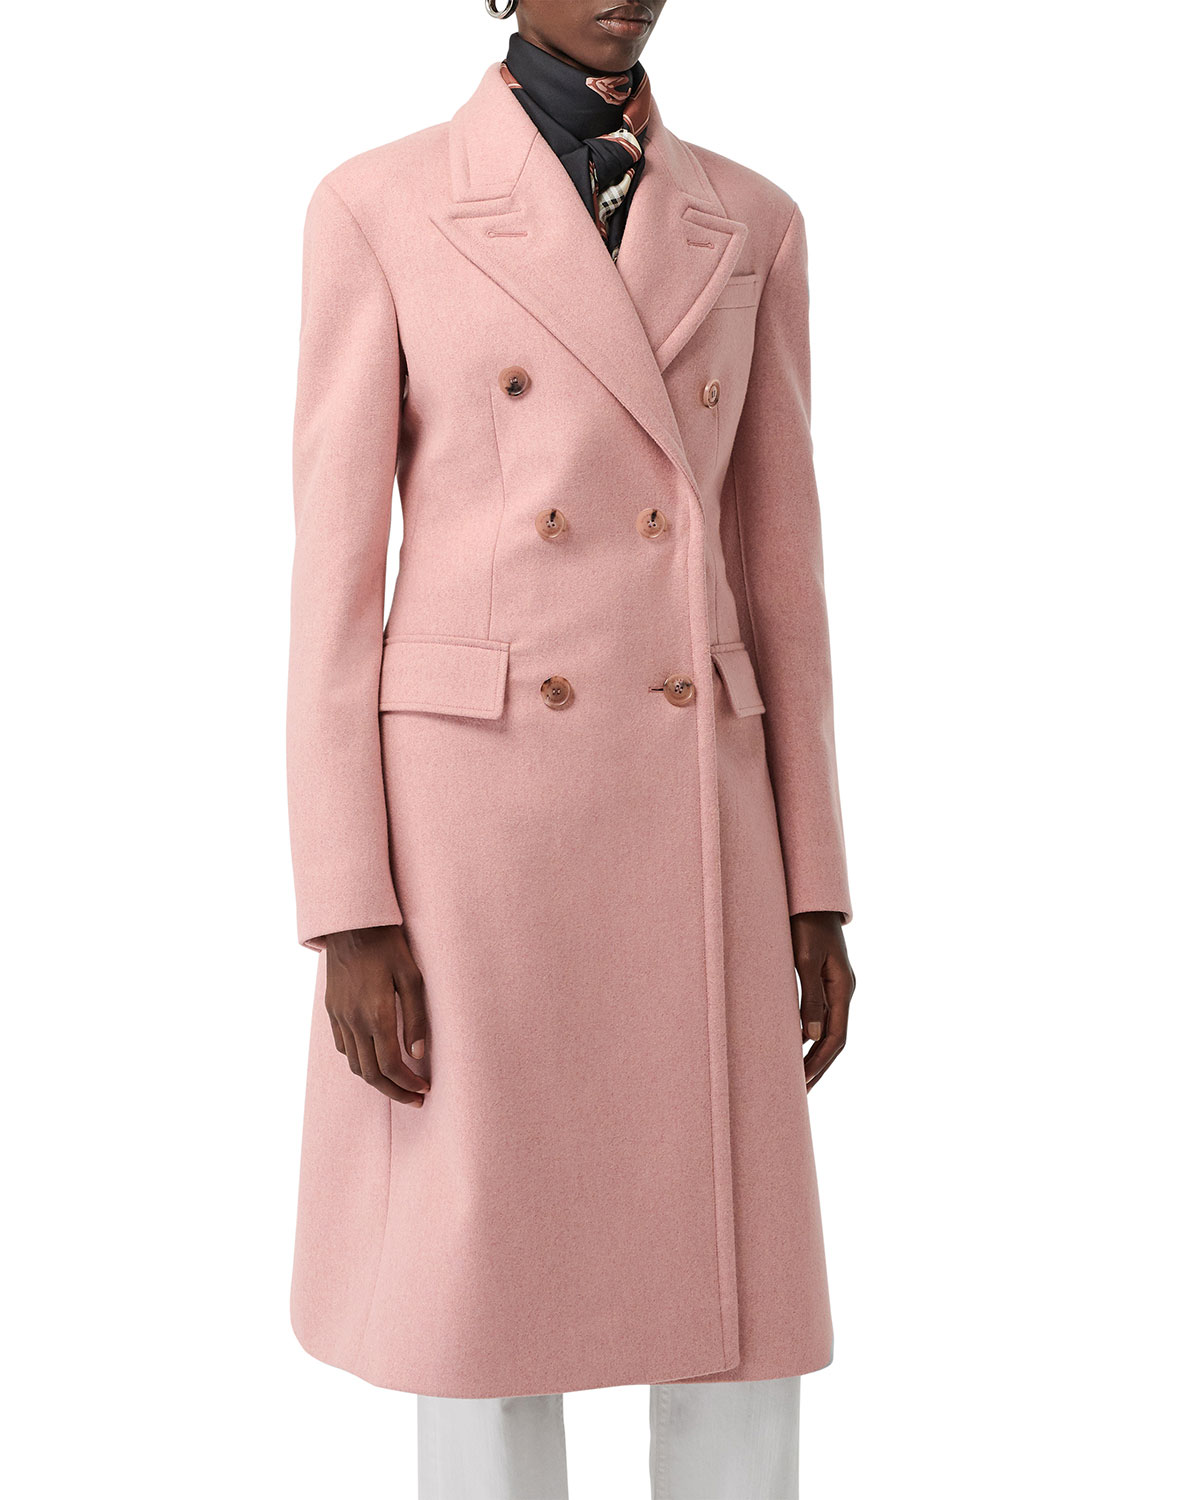 d3b1efe27ab5 Burberry Double-Breasted Wool Trench Coat